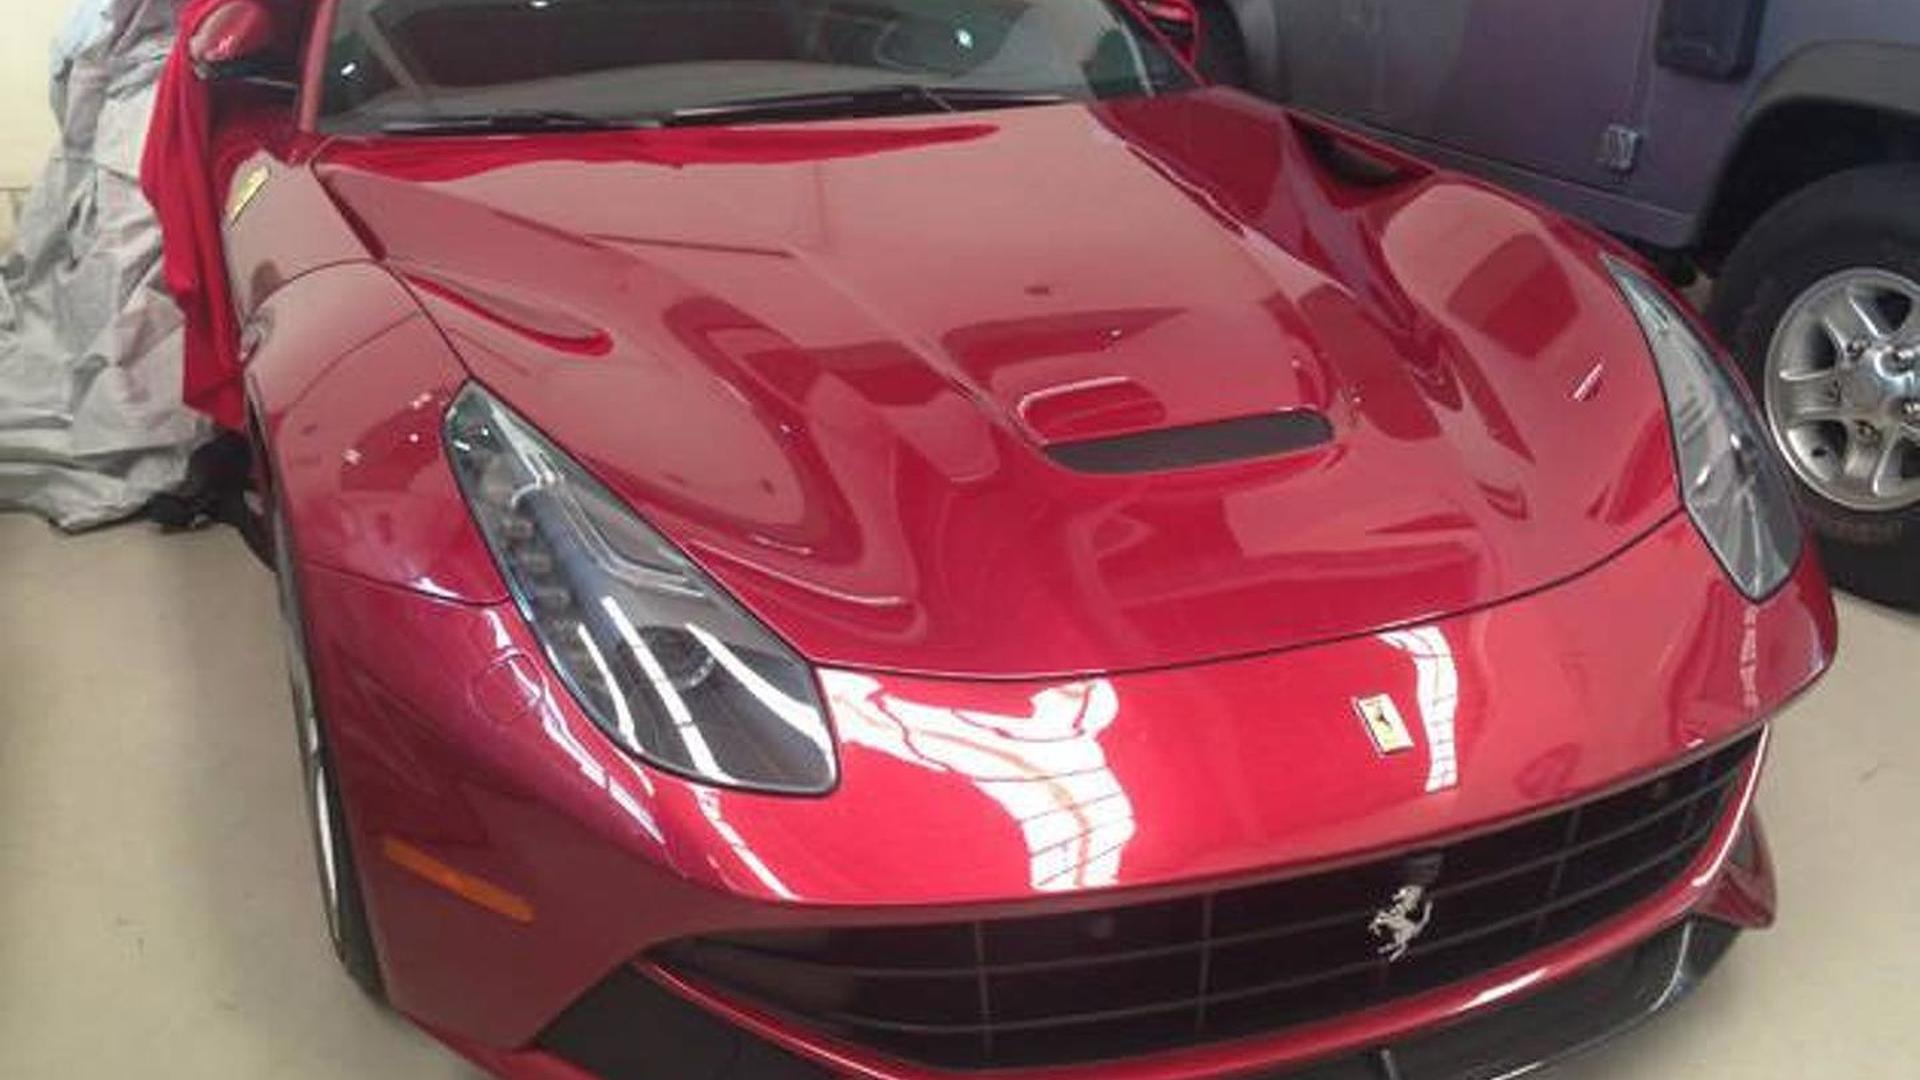 Man buys F12 Berlinetta just to be eligible to purchase LaFerrari